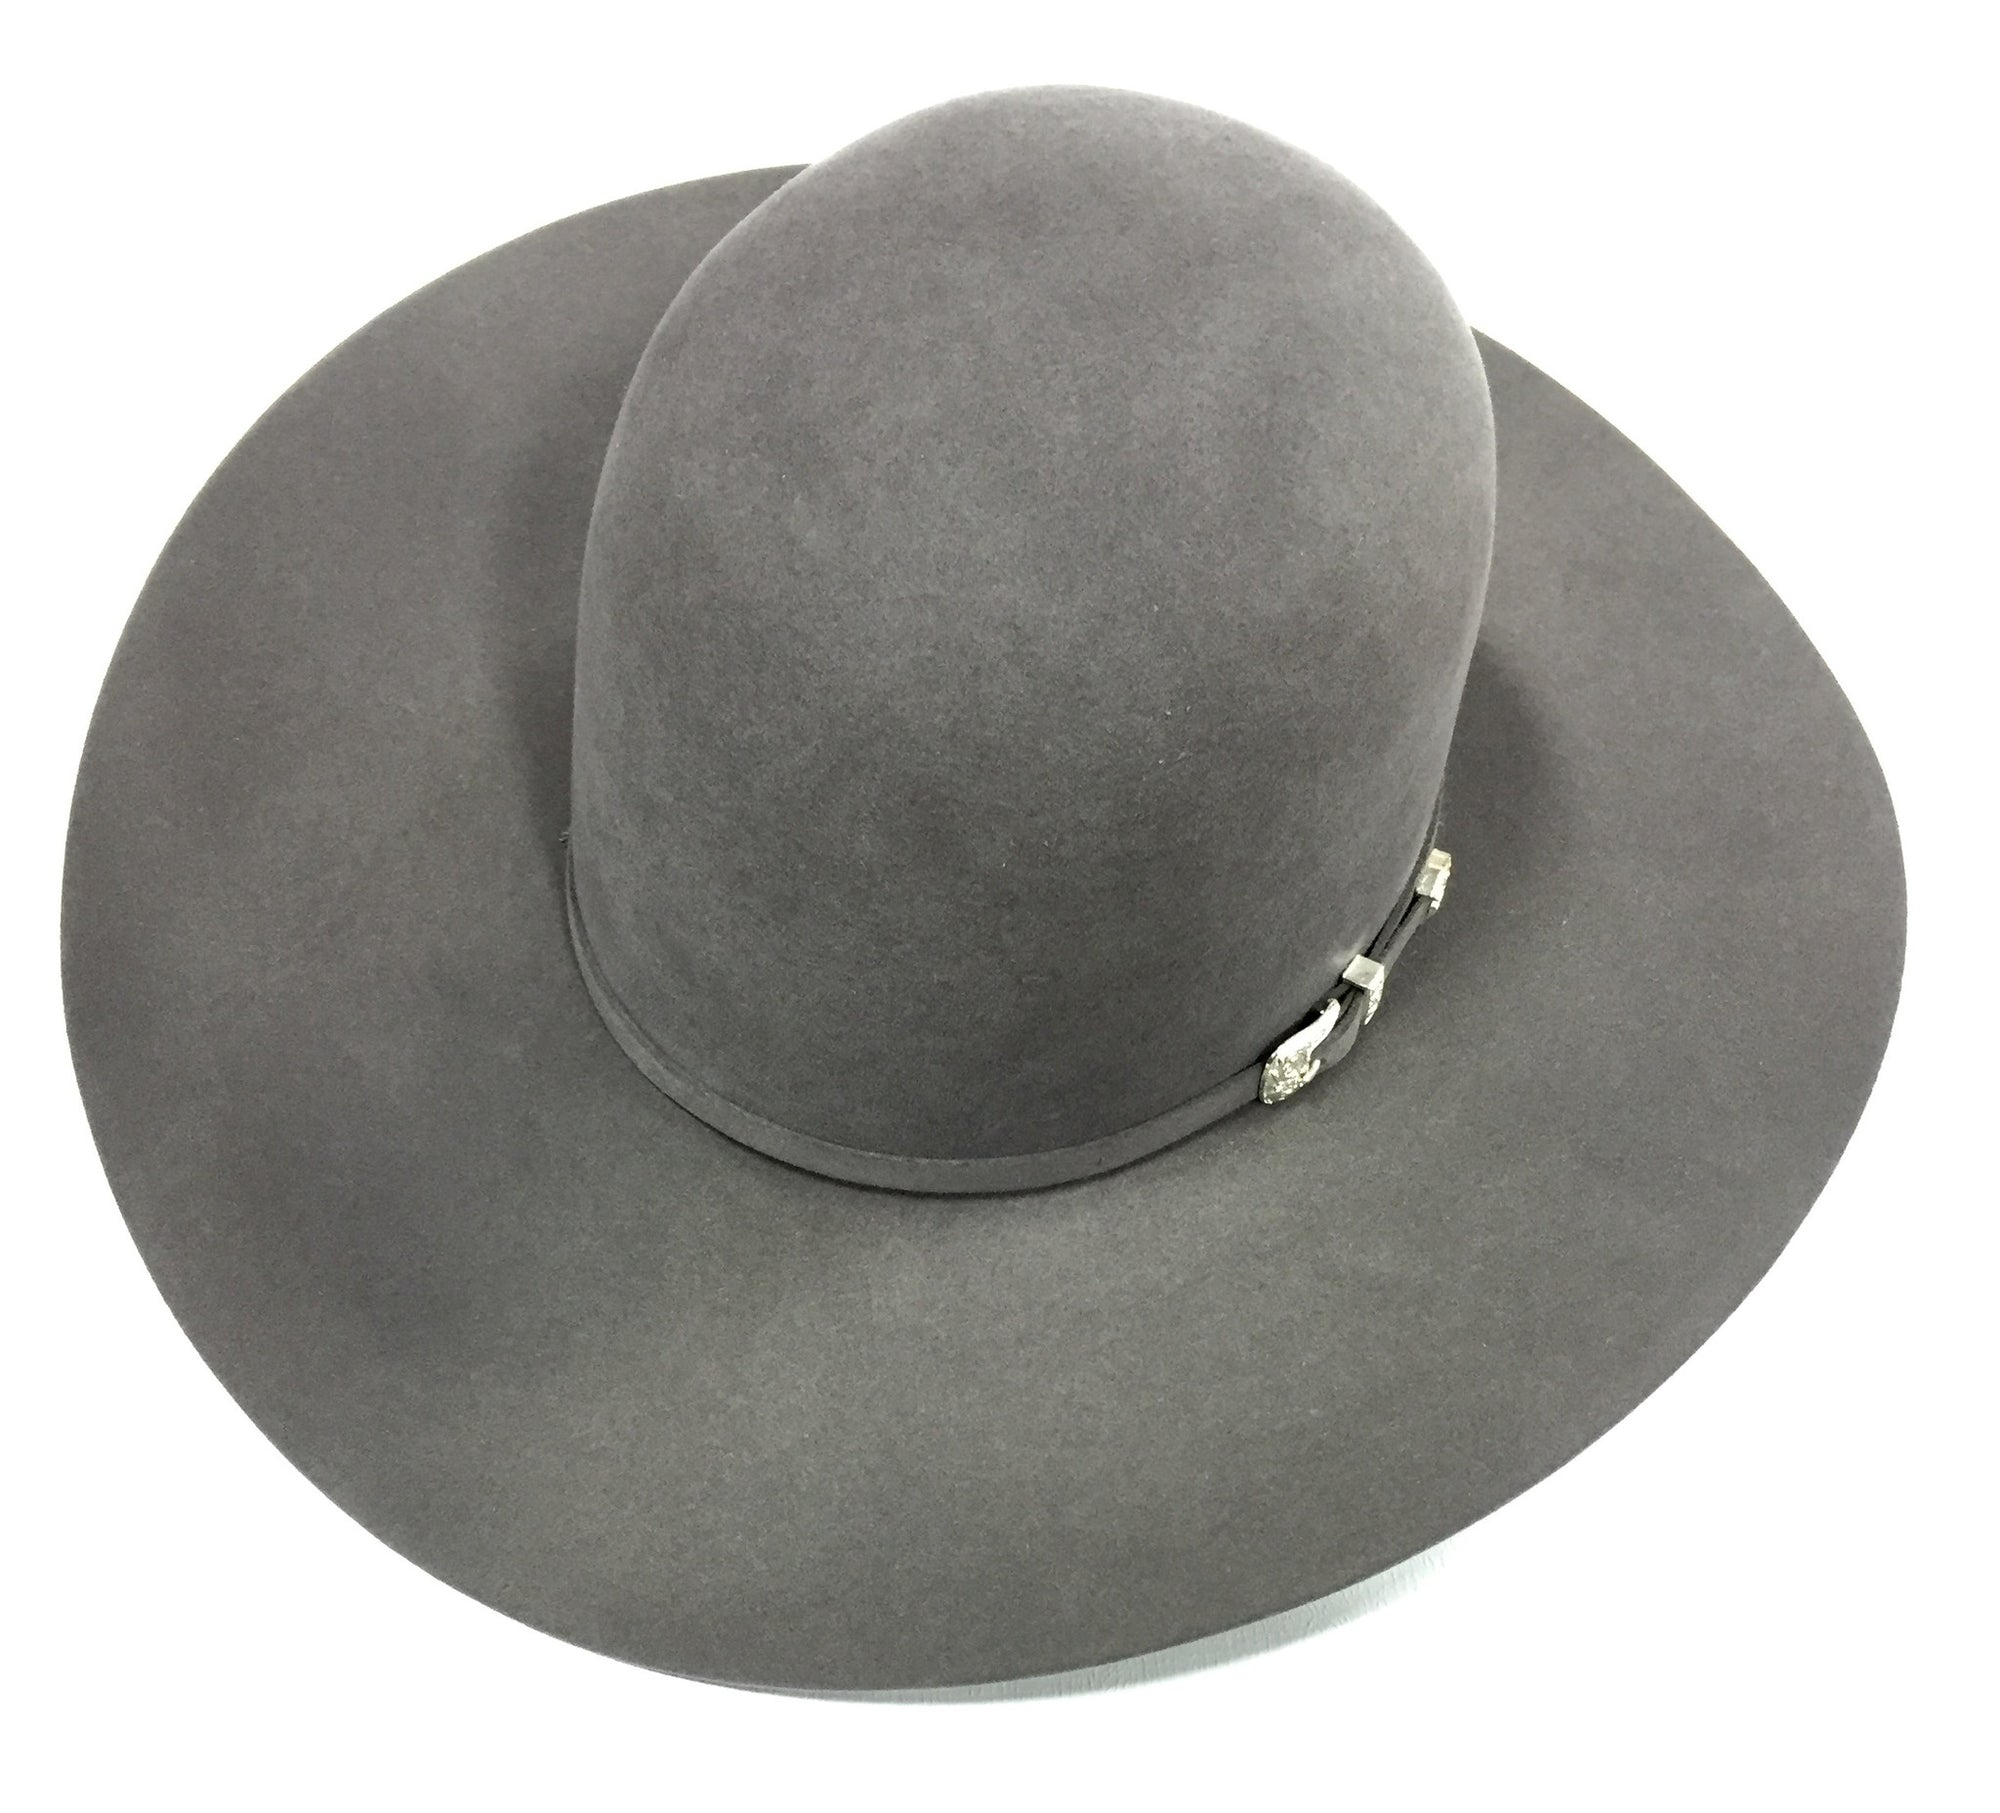 Steel Grey 10X 4 1/2 Brim Felt Hat by American Hat Co.